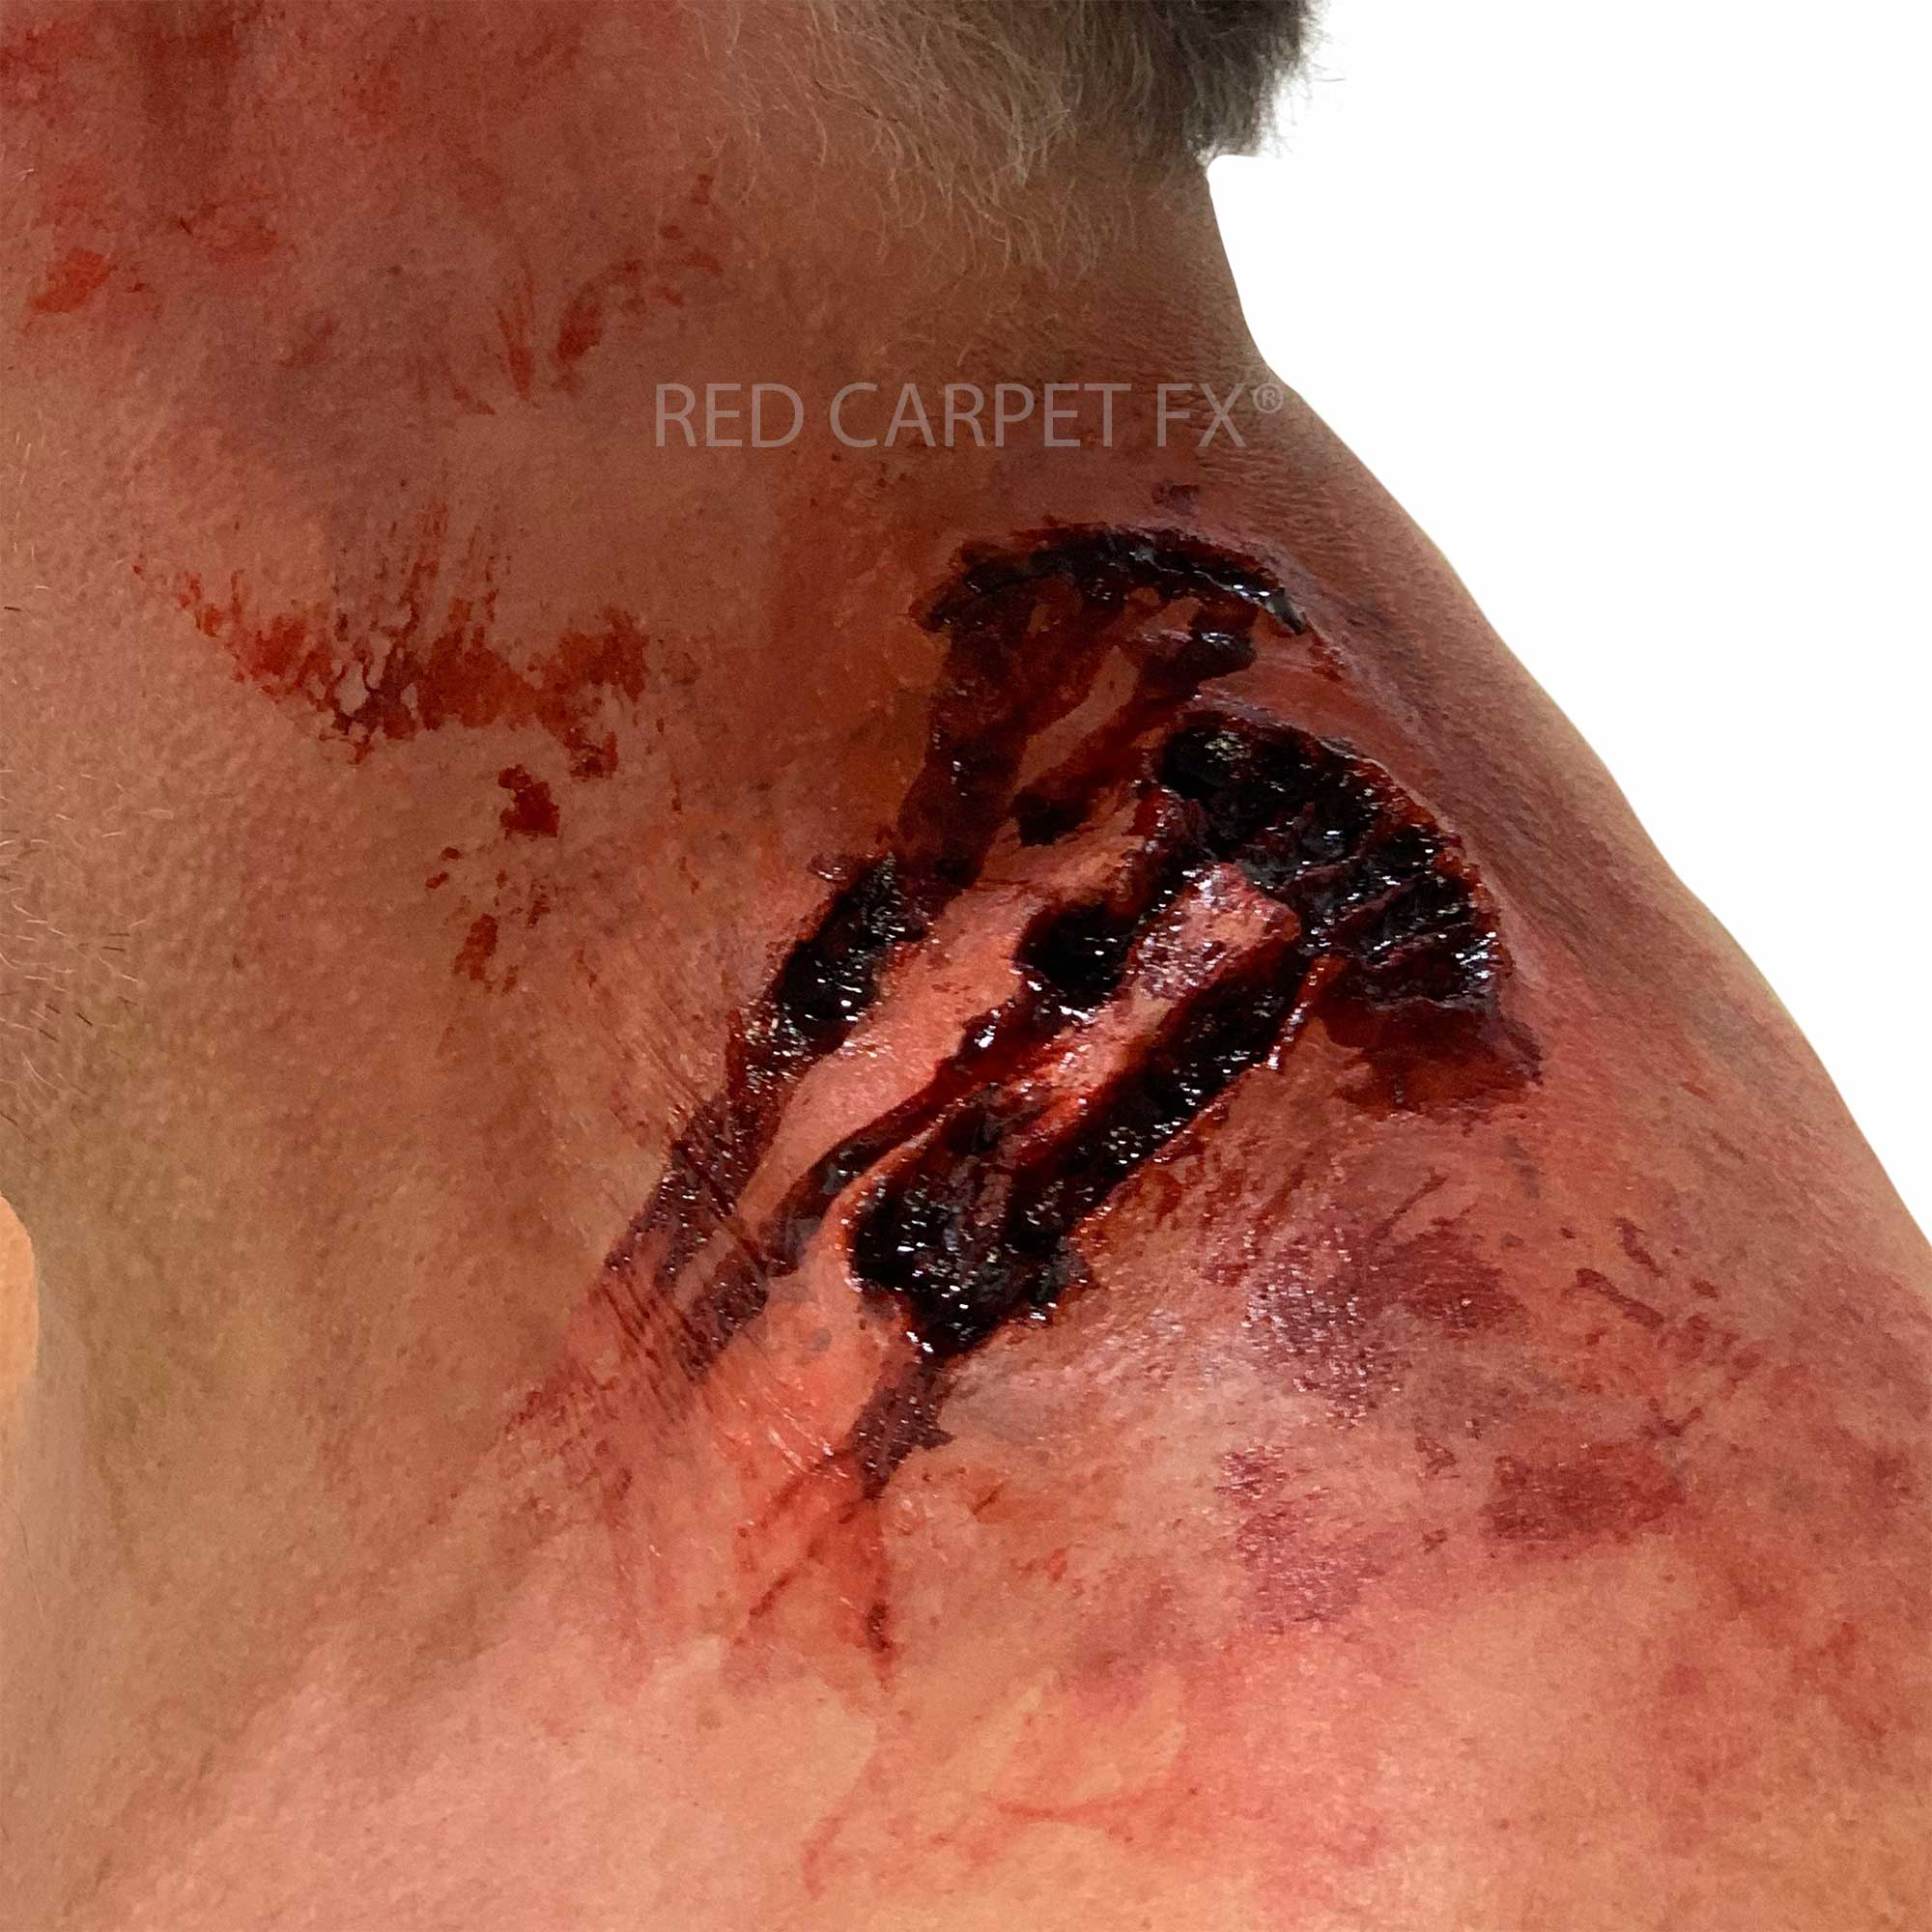 Monster FX Gelatine or Silicone Prosthetic - Neck Bite - Red Carpet FX - Professional Makeup